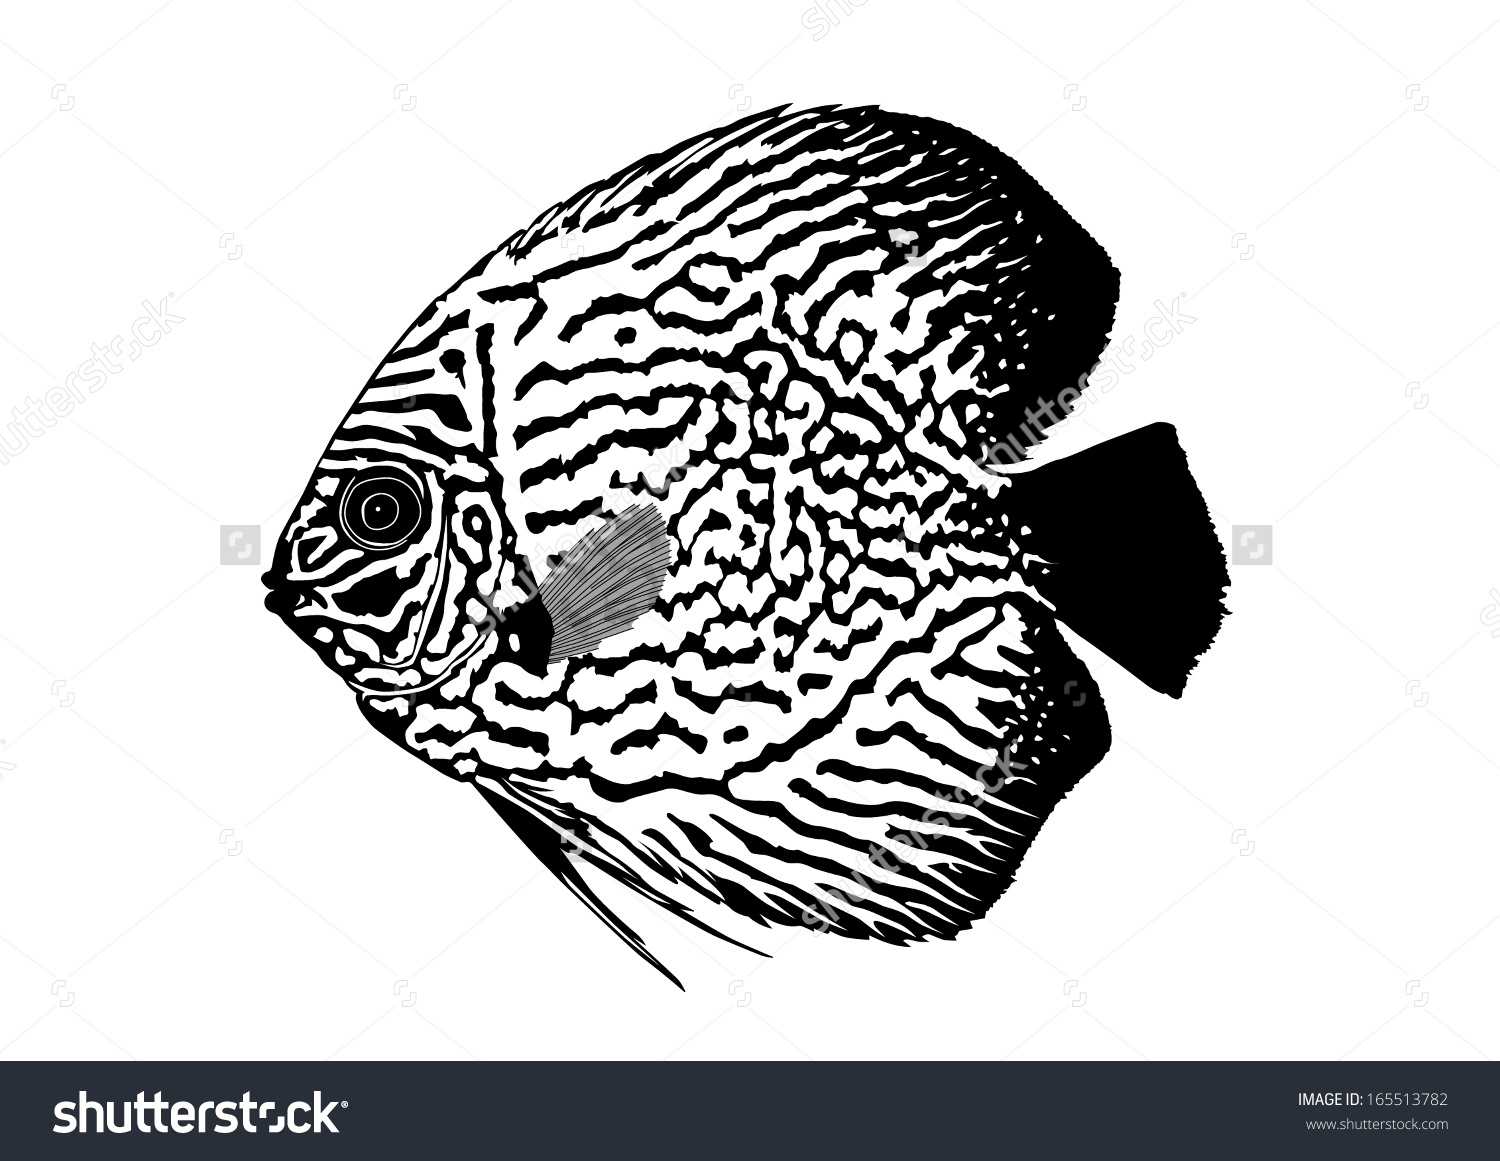 Discus Fish Silhouette Stock Vector 165513782.